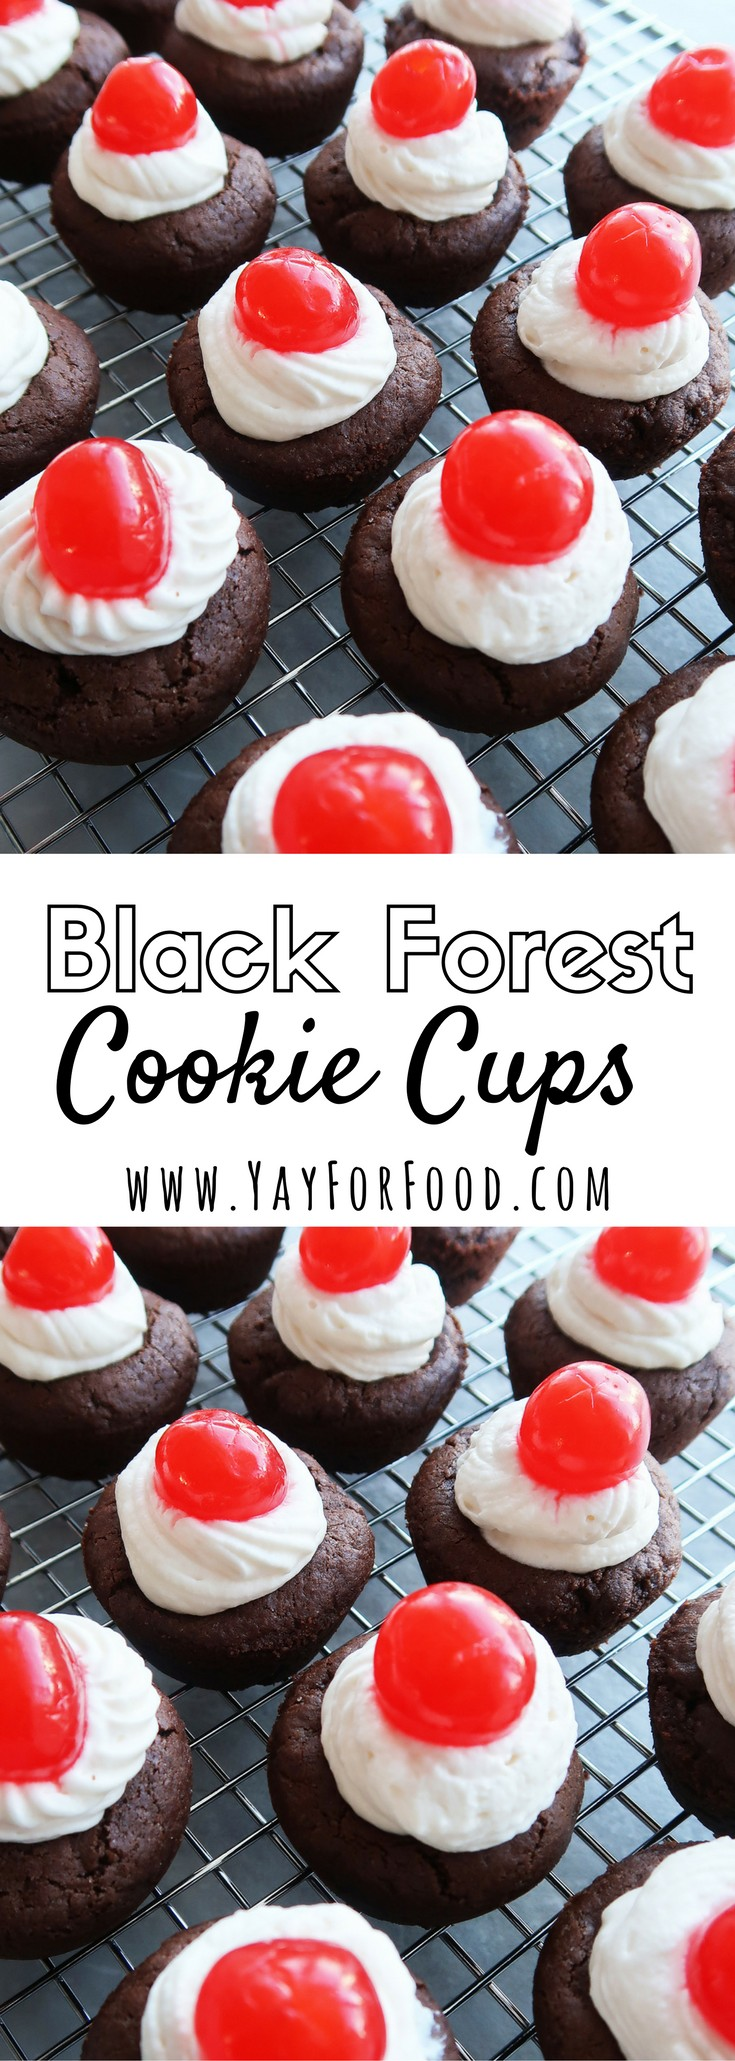 "<span style=""font-size:14.6667px"">Inspired by Black Forest Cake! It is a soft, chewy chocolate brownie cookie, filled with homemade whipped cream, and topped with a maraschino cherry!</span>"